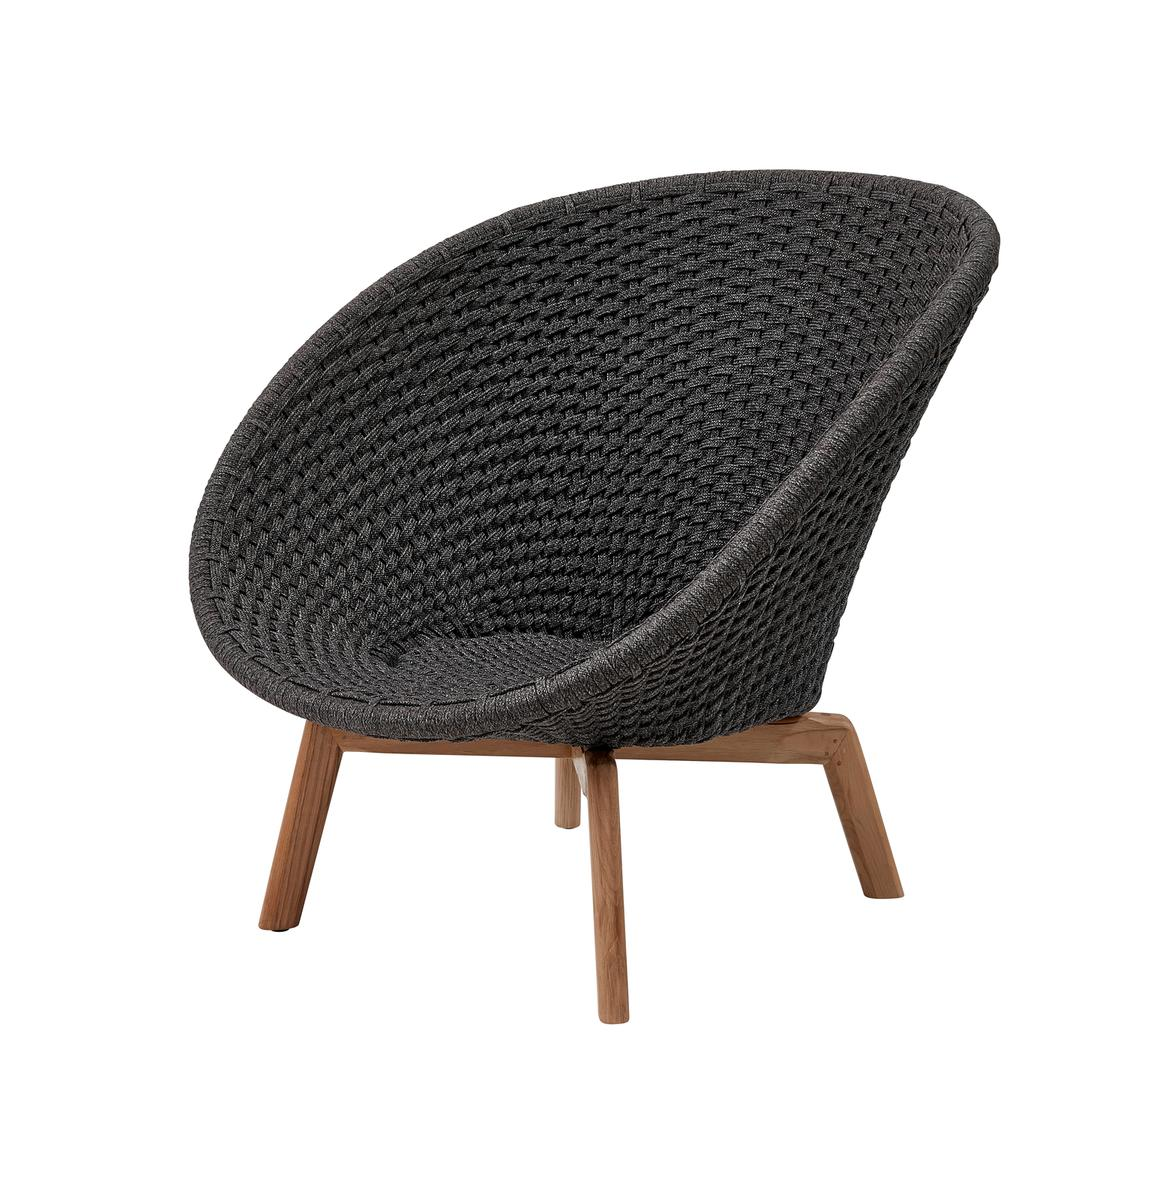 Cane Line Pea Outdoor Lounge